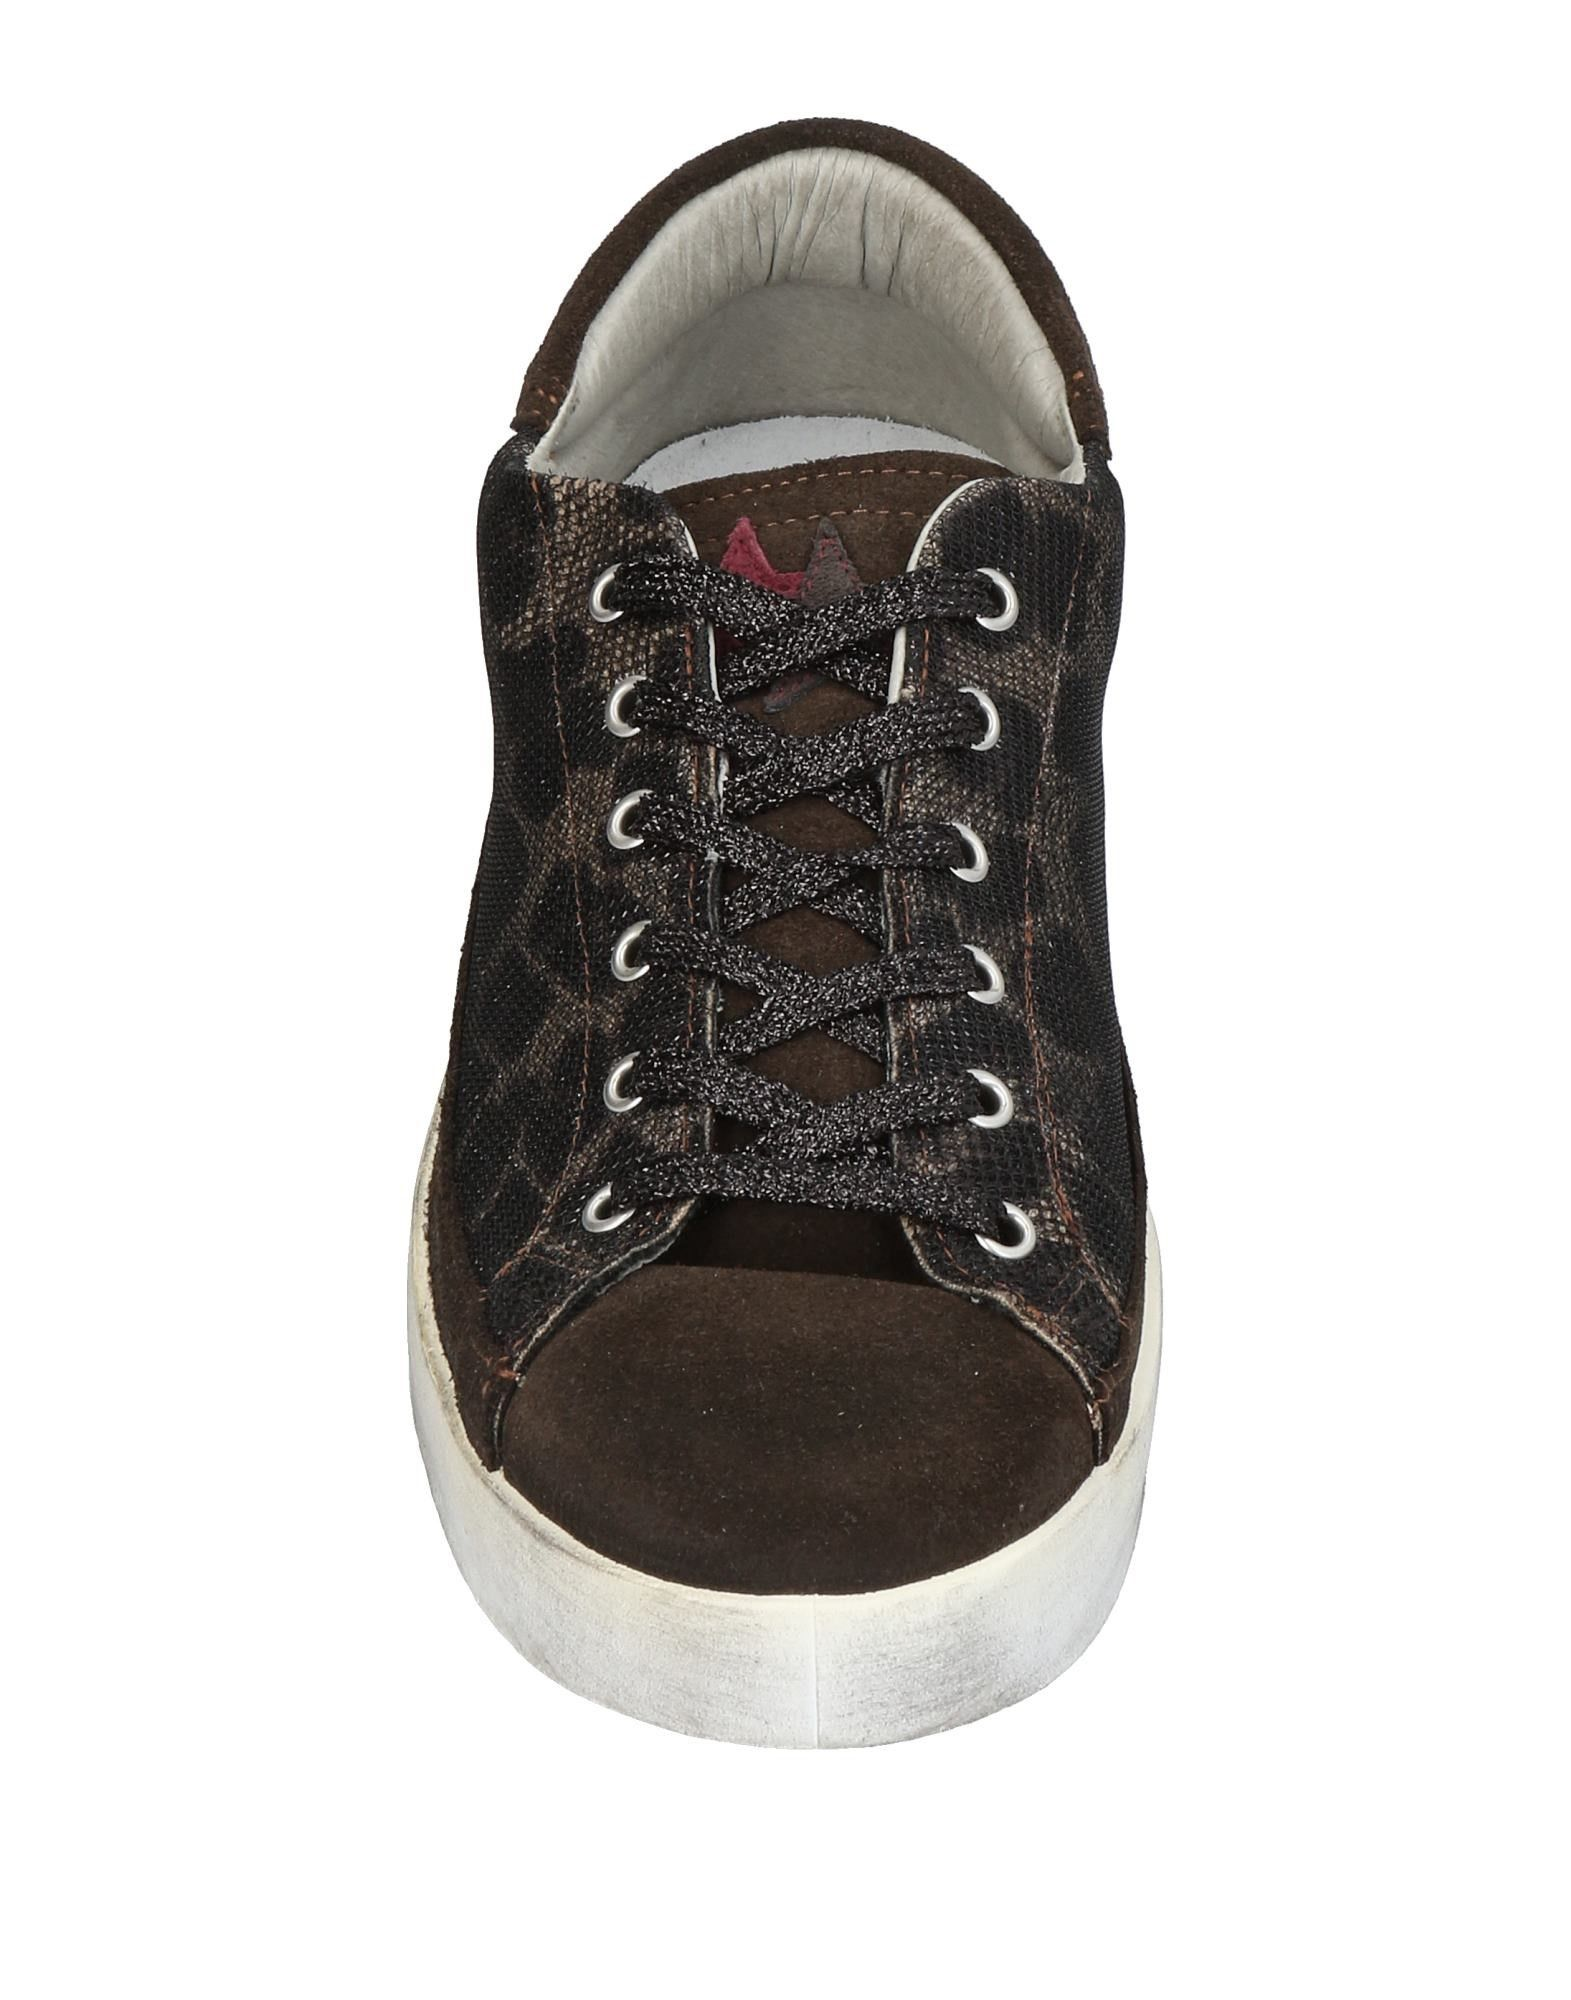 Moda Sneakers 2Star 2Star Sneakers Donna - 11419325AB c9cec4